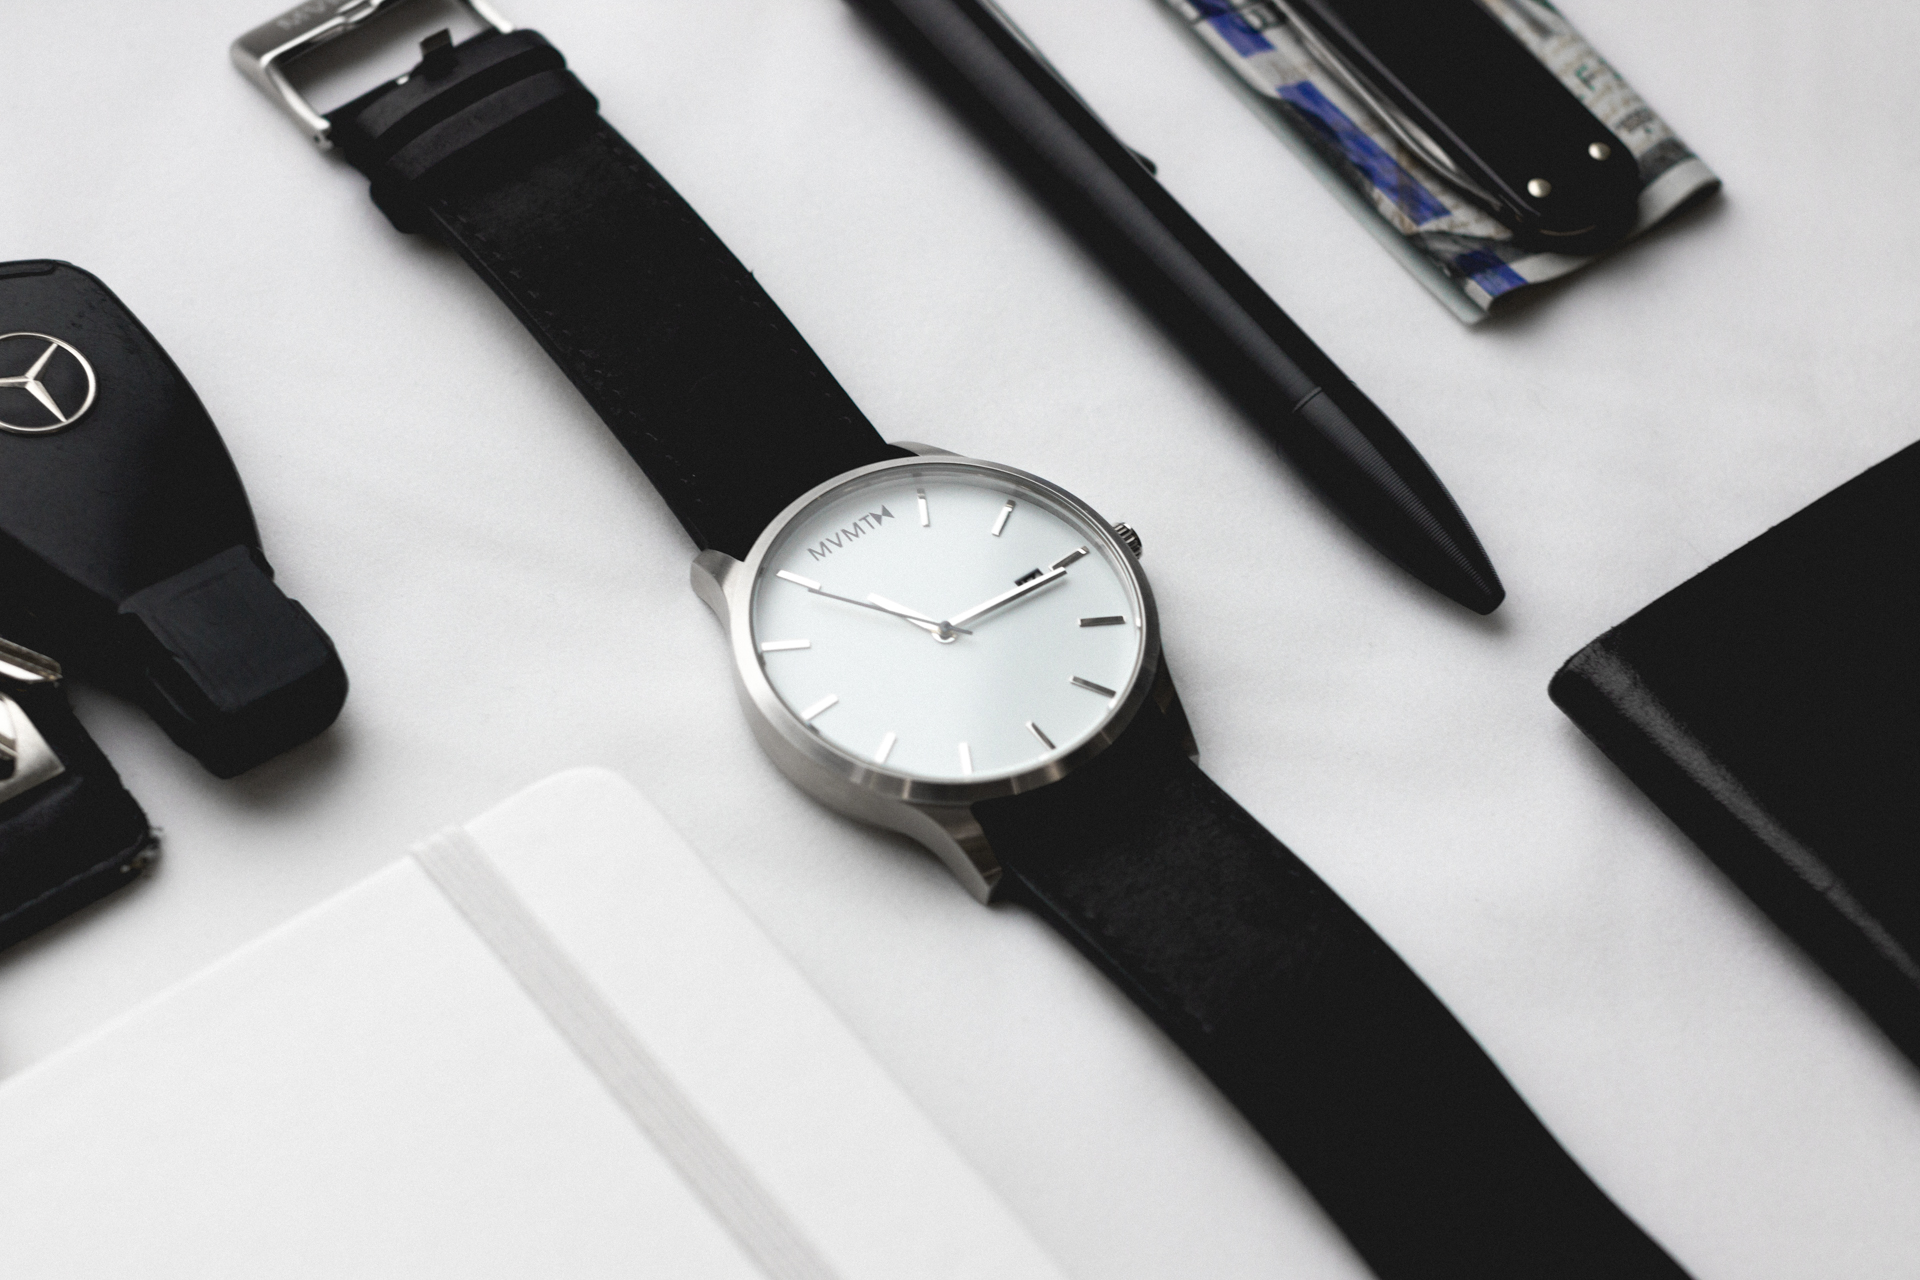 s quartz gold fashion watches products silver casual metal plated face band mens watch wrist plain